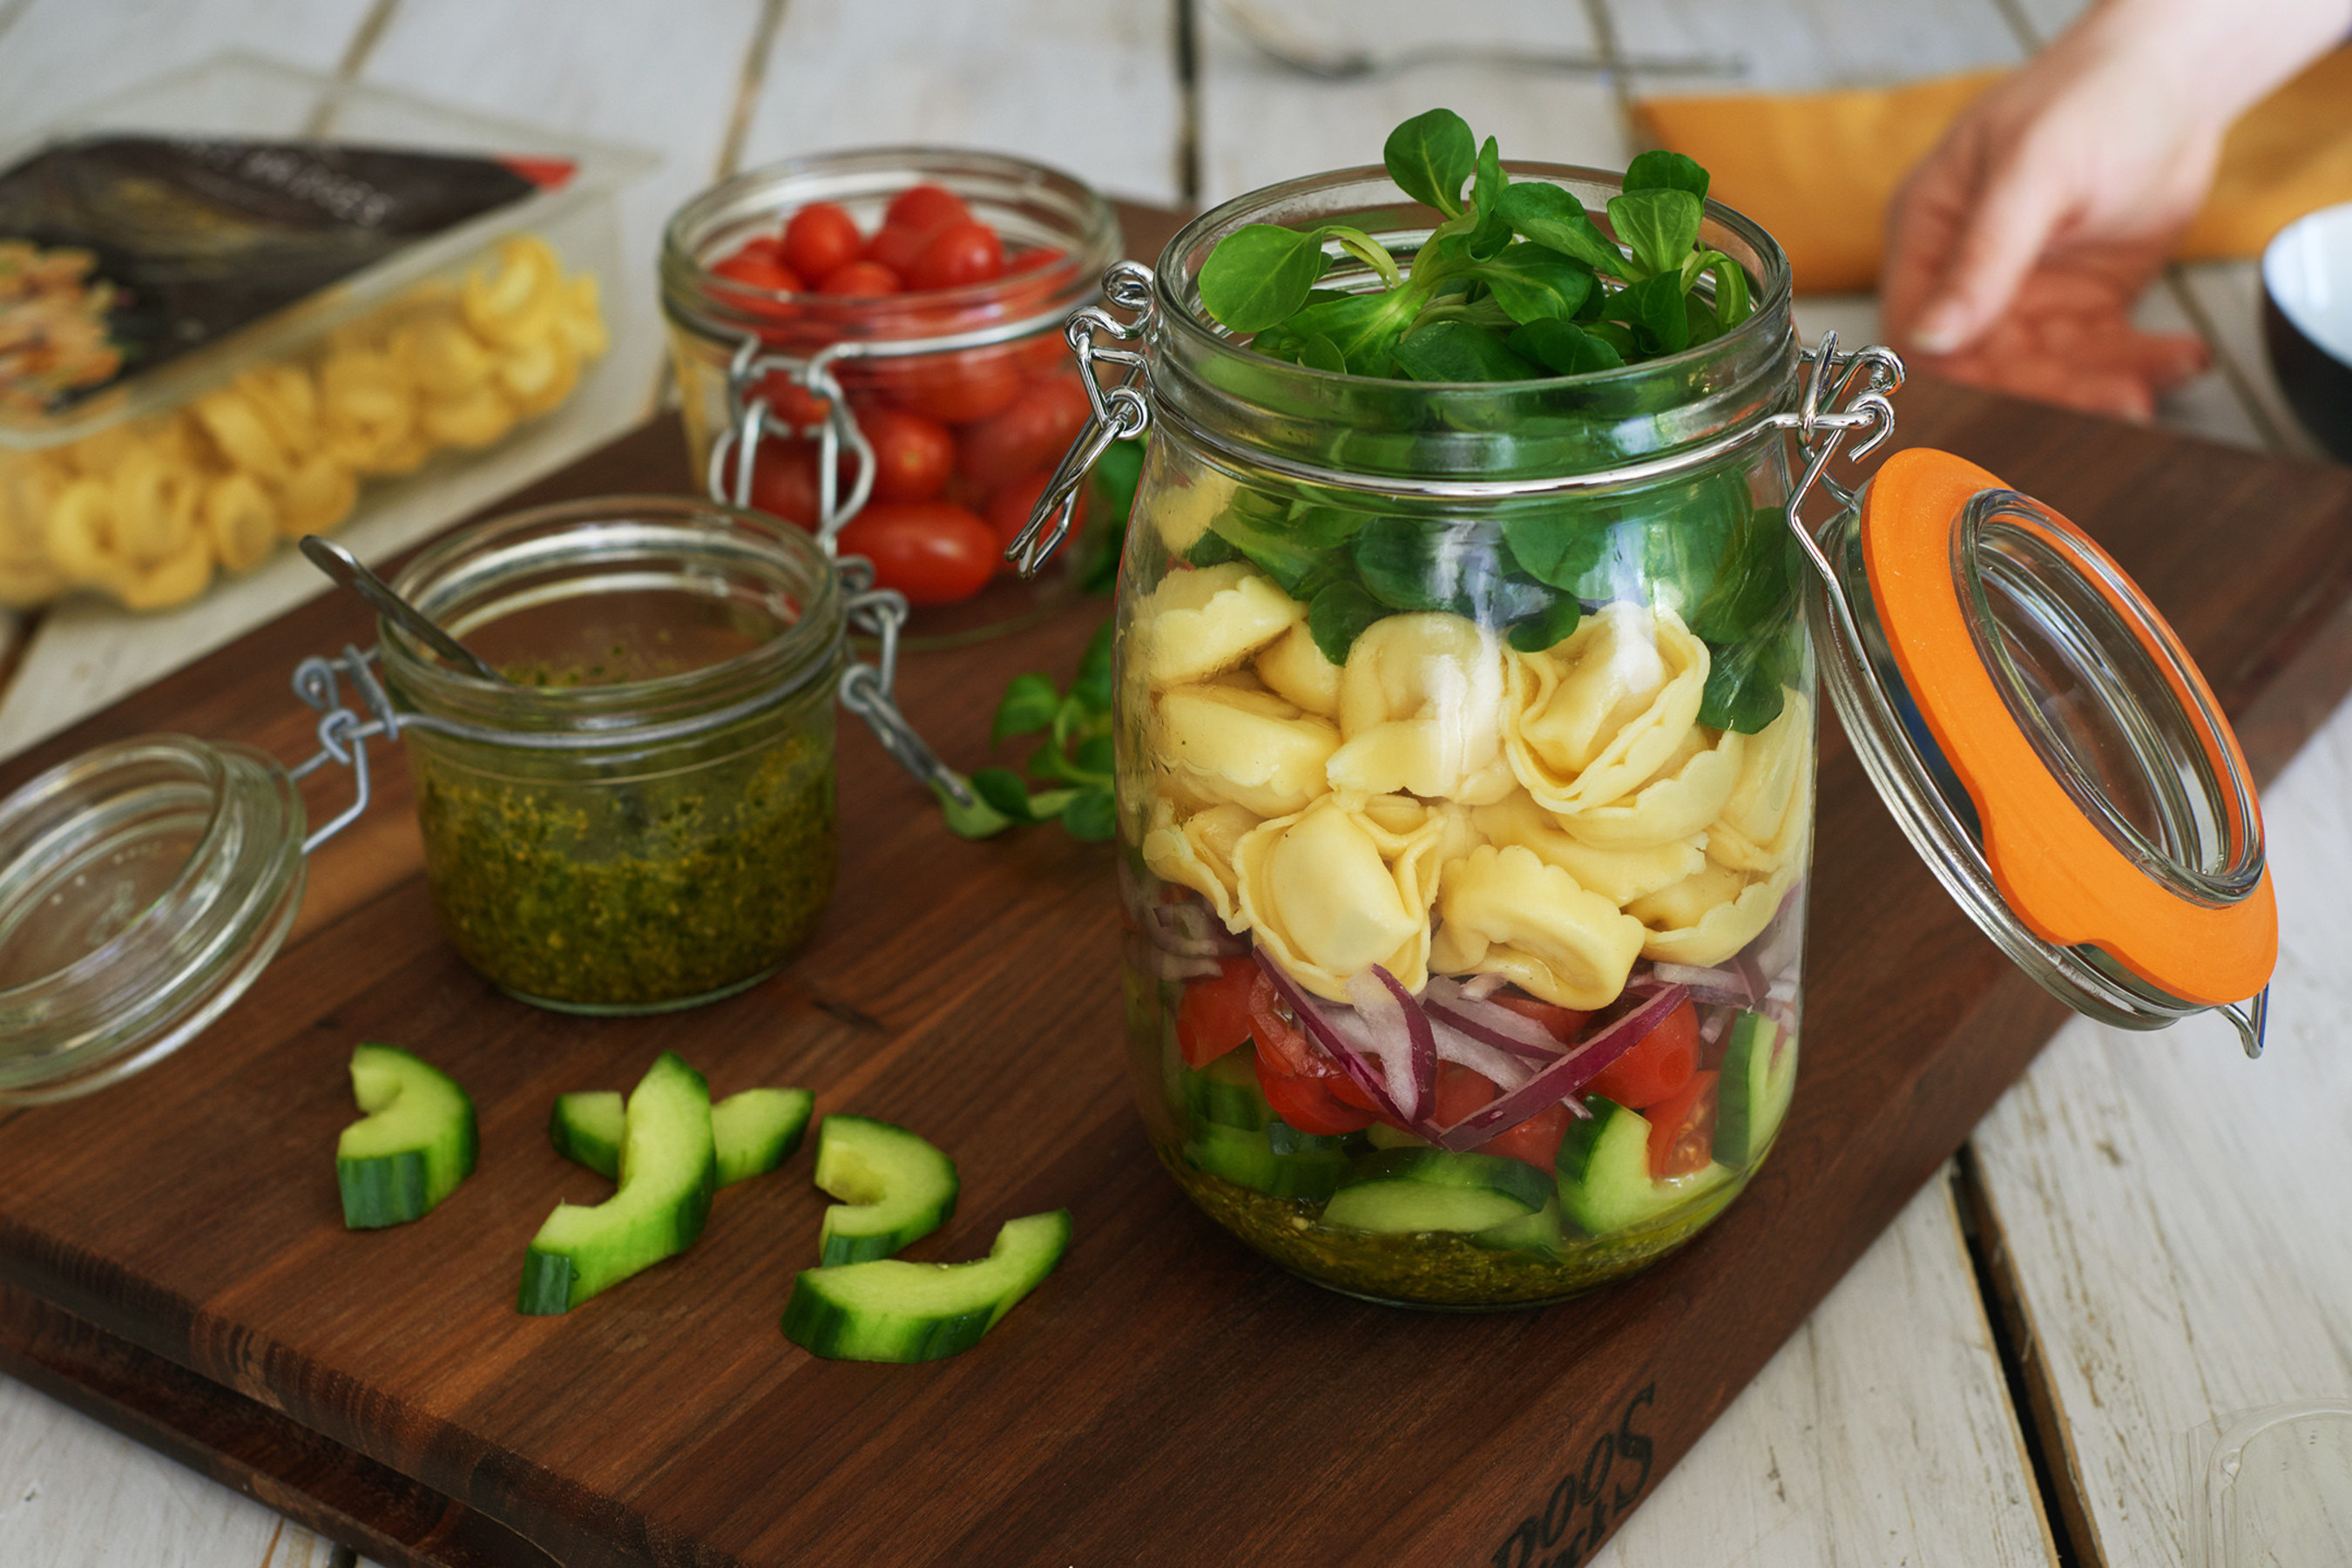 Three Bridges' Tortellini Salad in a Jar